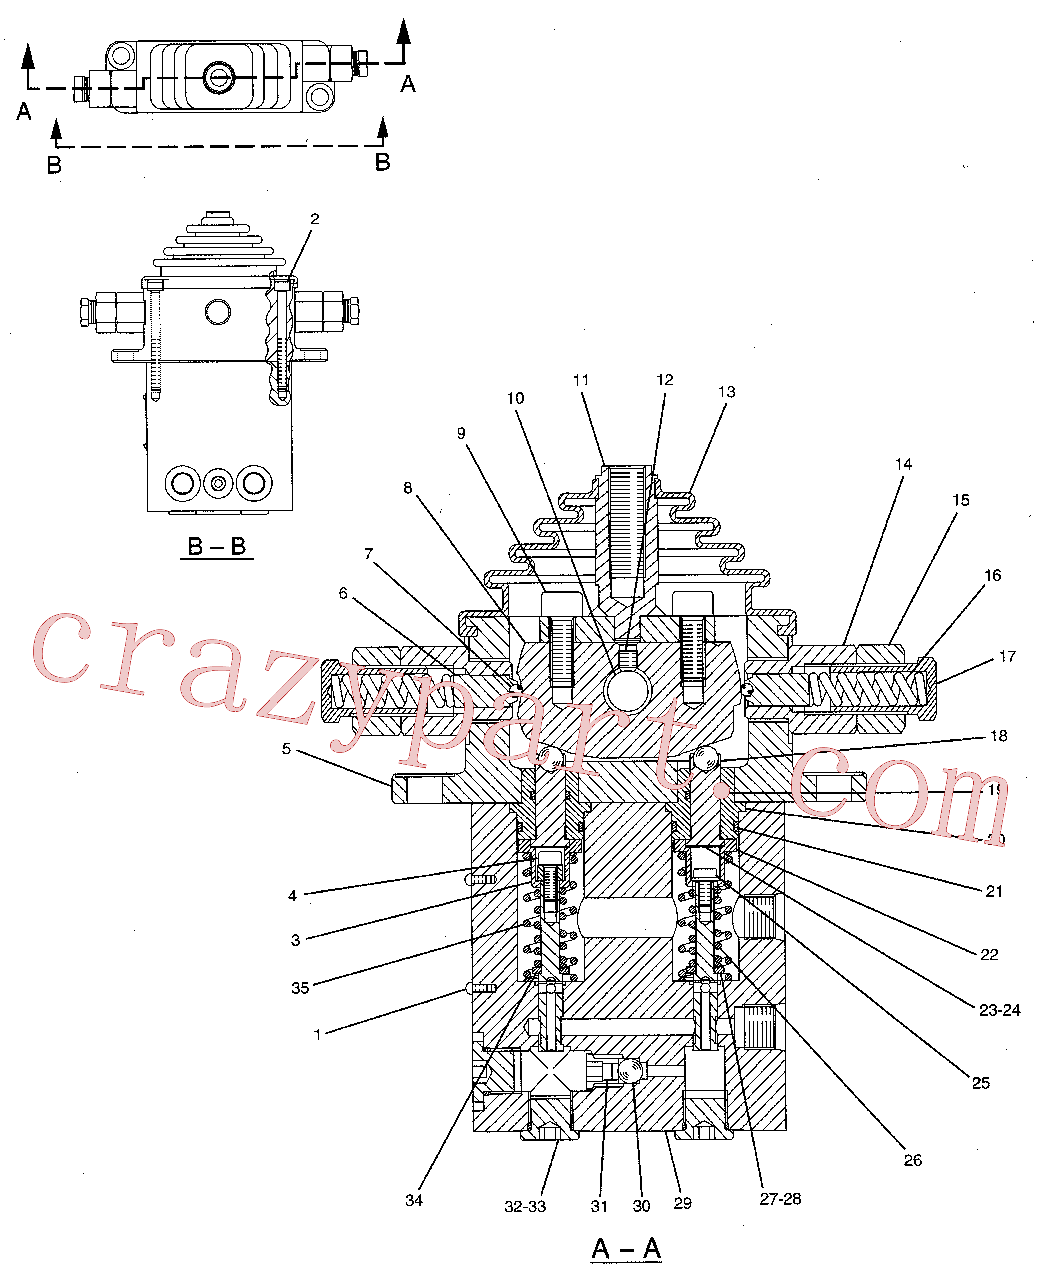 CAT 9X-2537 for CP-64 Vibratory Compactor(COMP) hydraulic system 190-7695 Assembly